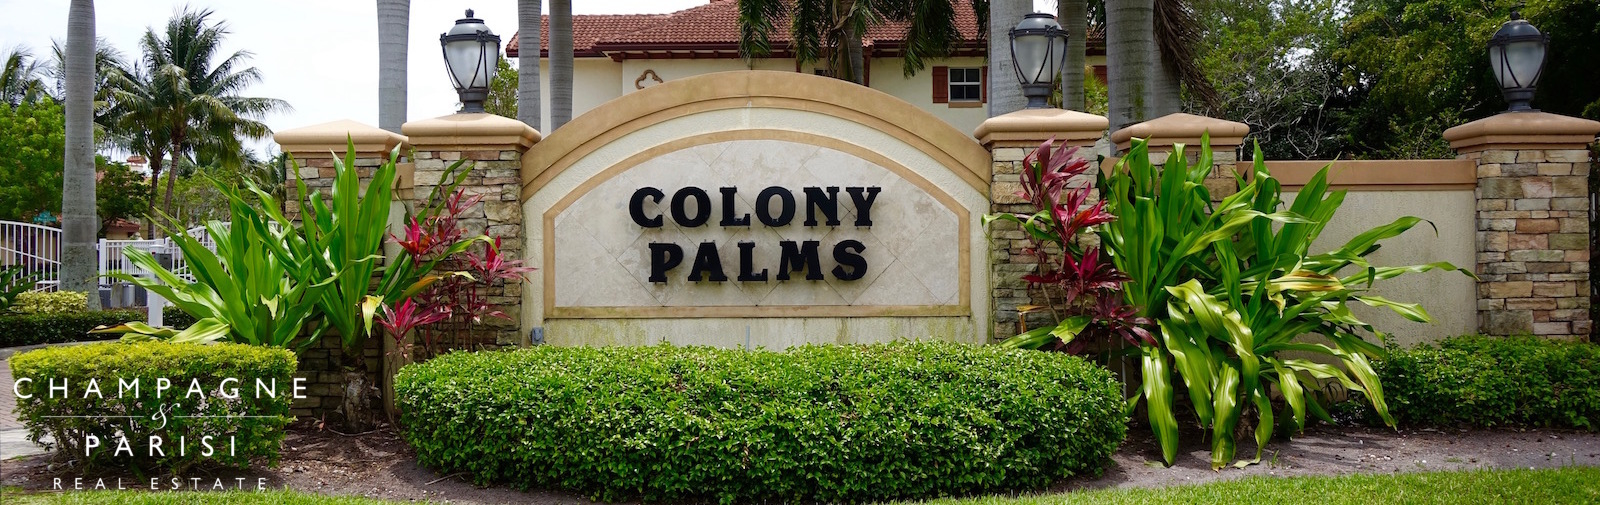 colony palms townhomes delray beach